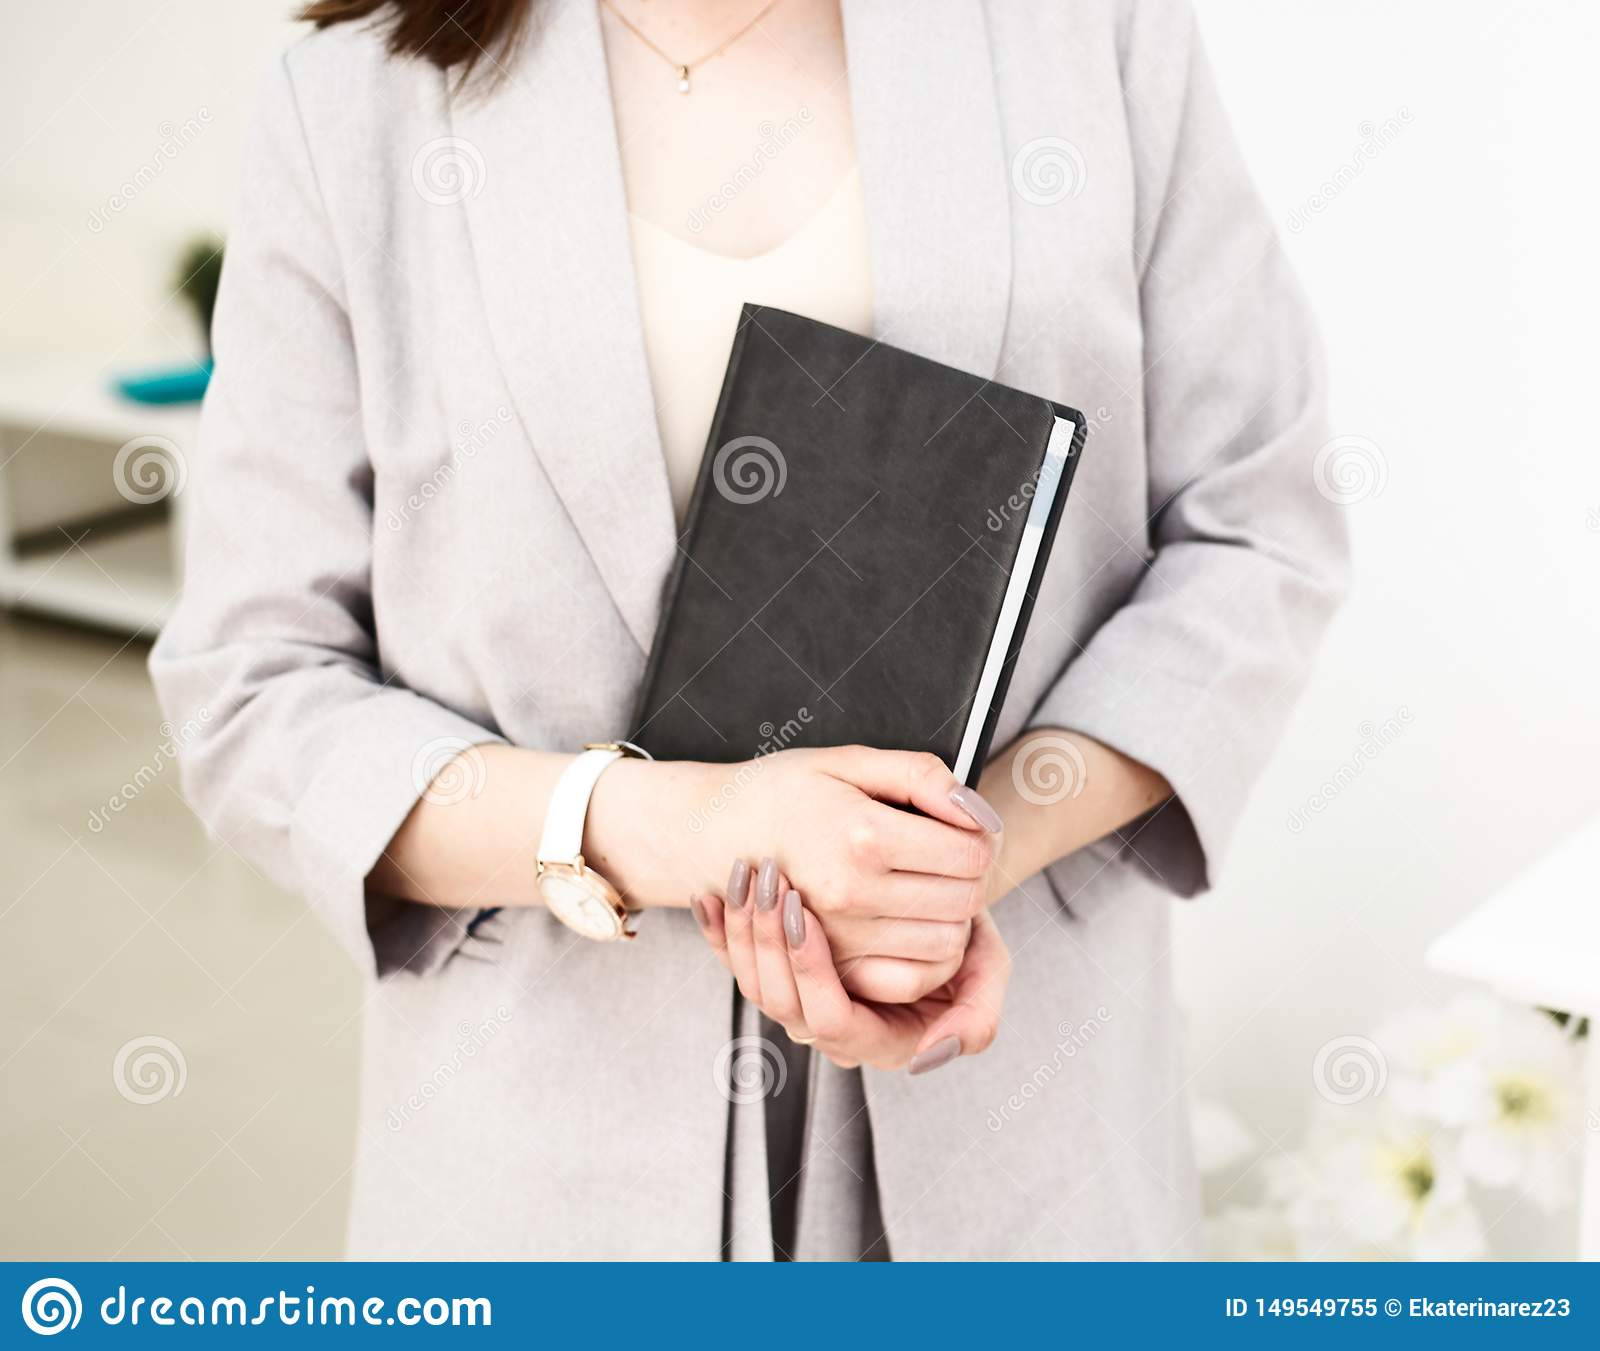 Girl is handing a book in her hands, dressed in grey jacket. She has a wrist watch on her hand. White background